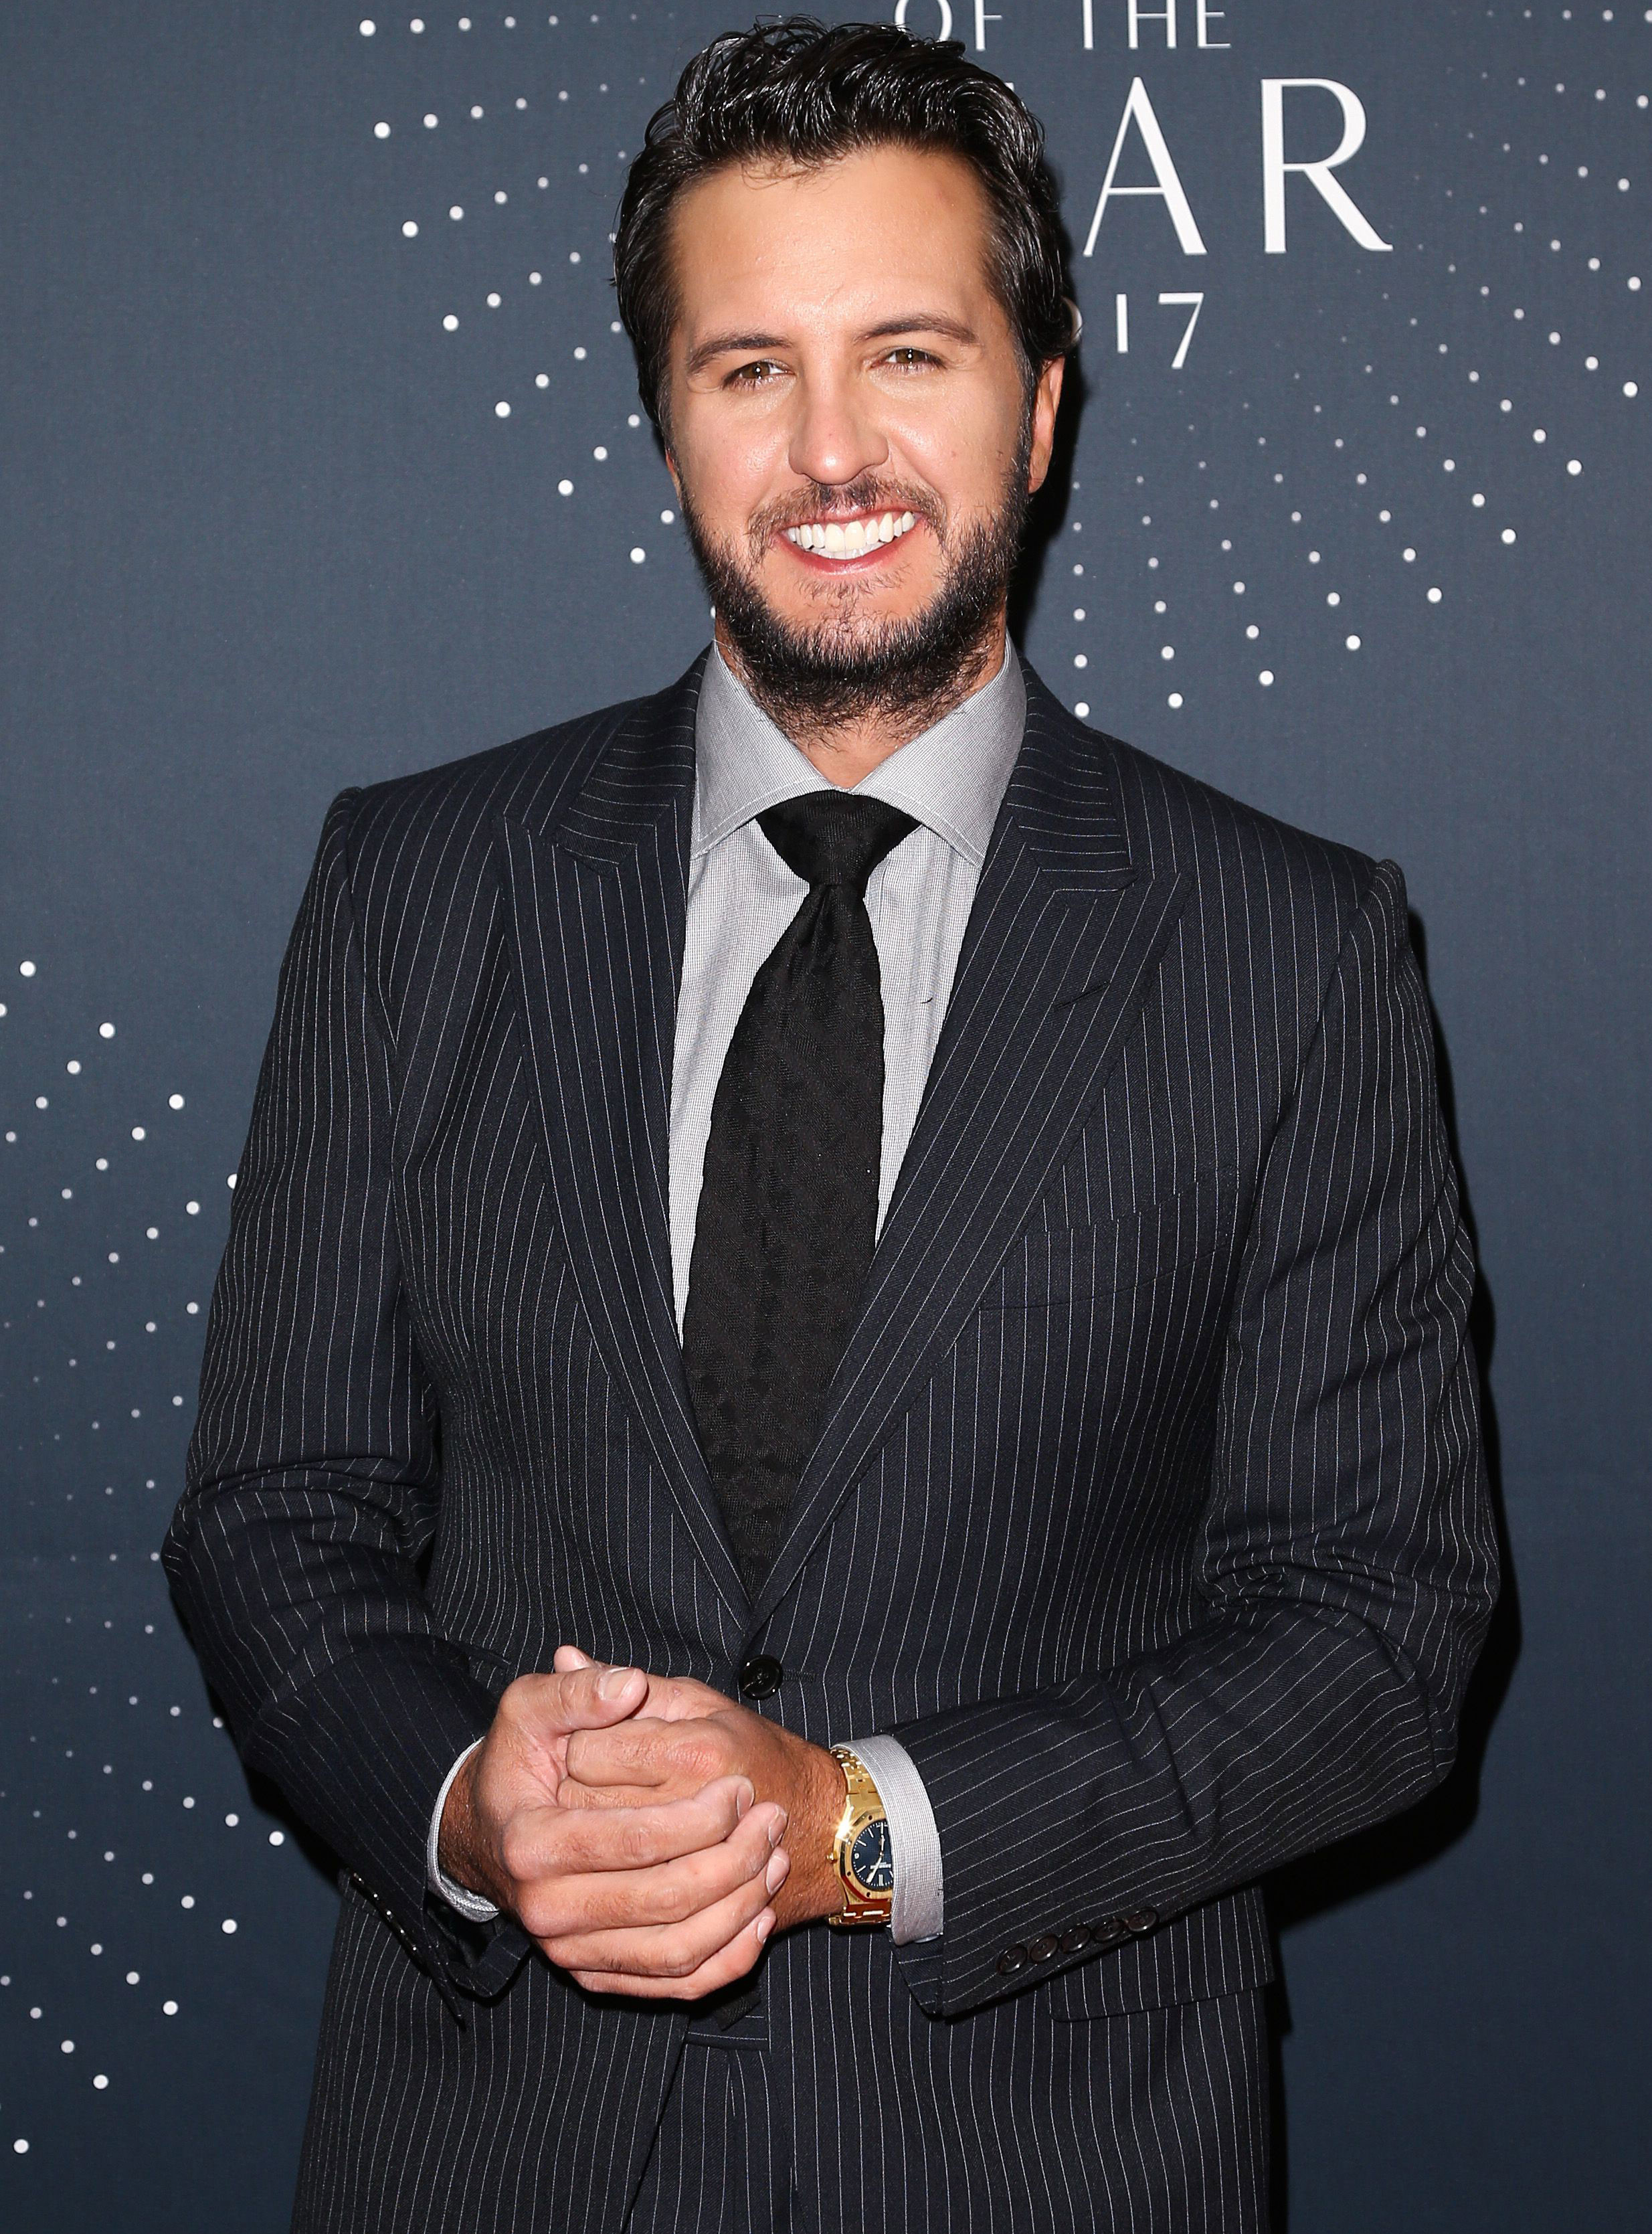 Luke Bryan Is Getting Into the Christmas Spirit with Soulful Rendition of 'O Holy Night'